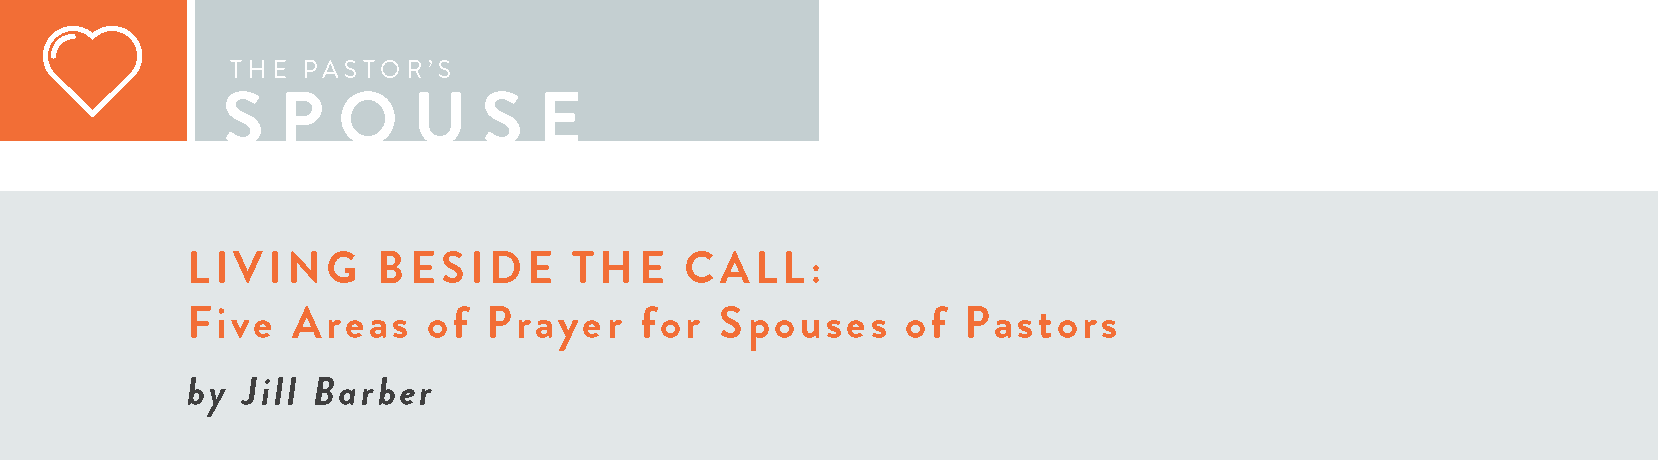 GP Spring19 spouse tag title